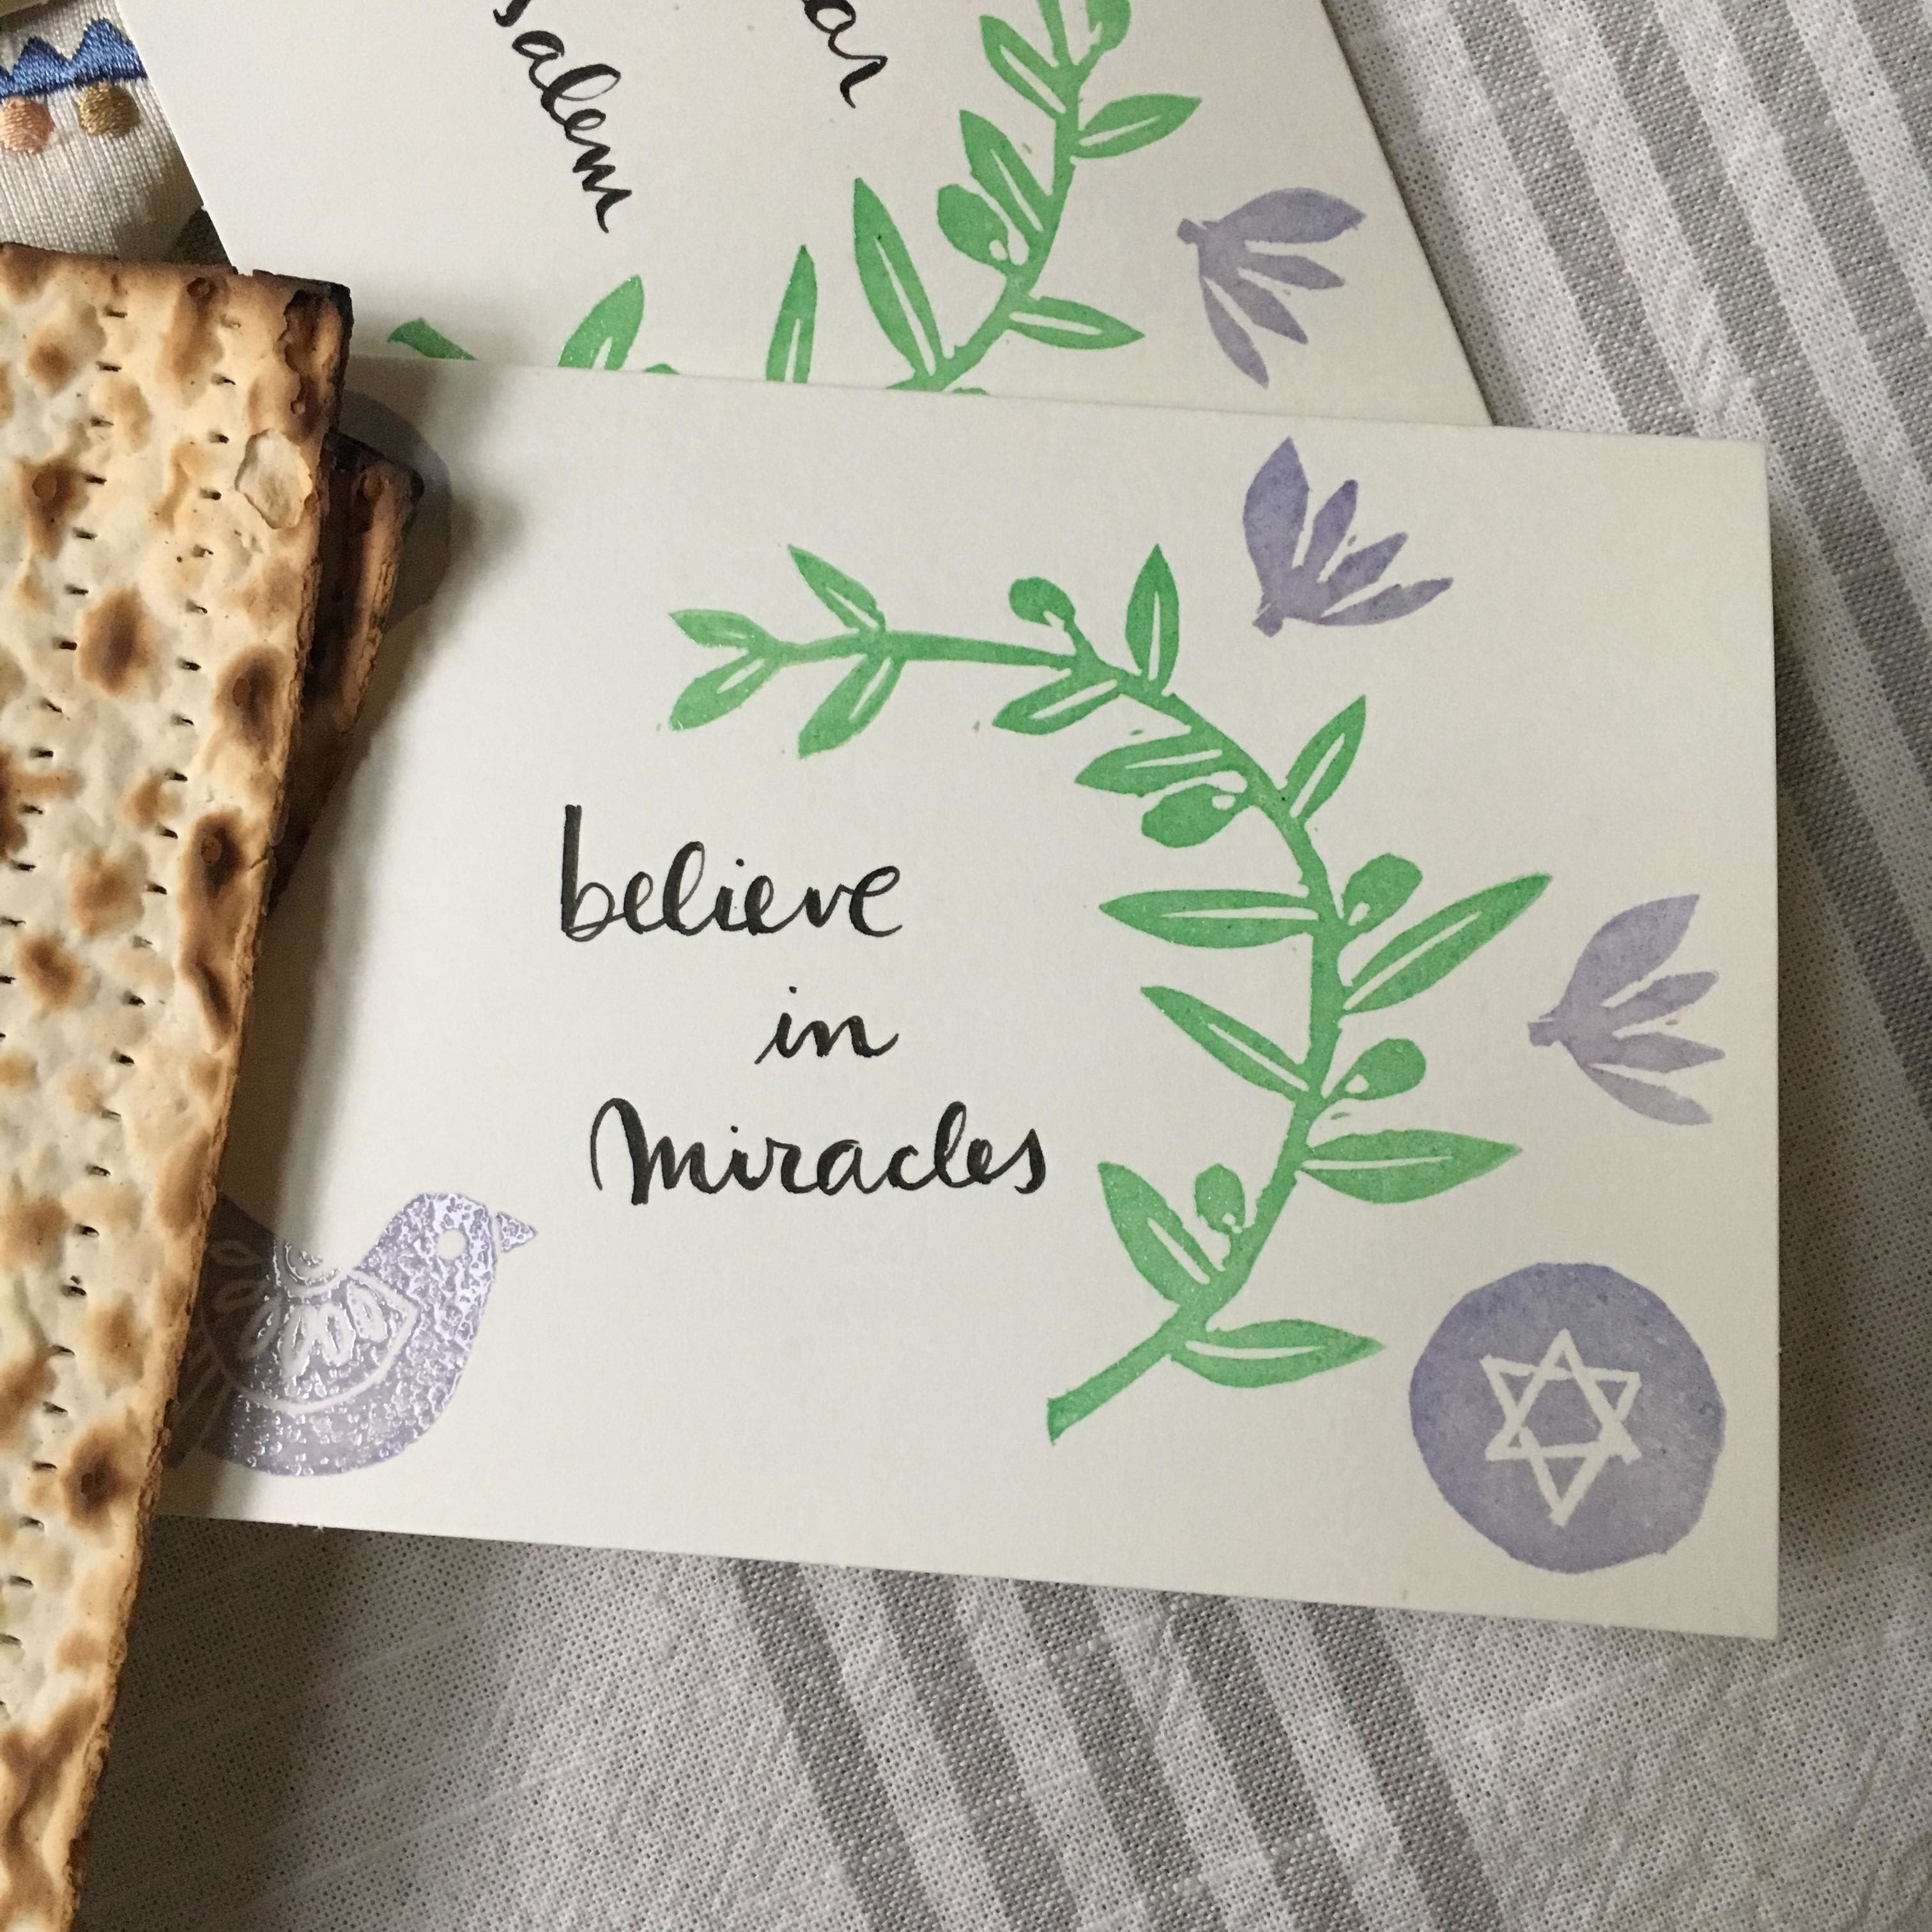 A crafty Passover